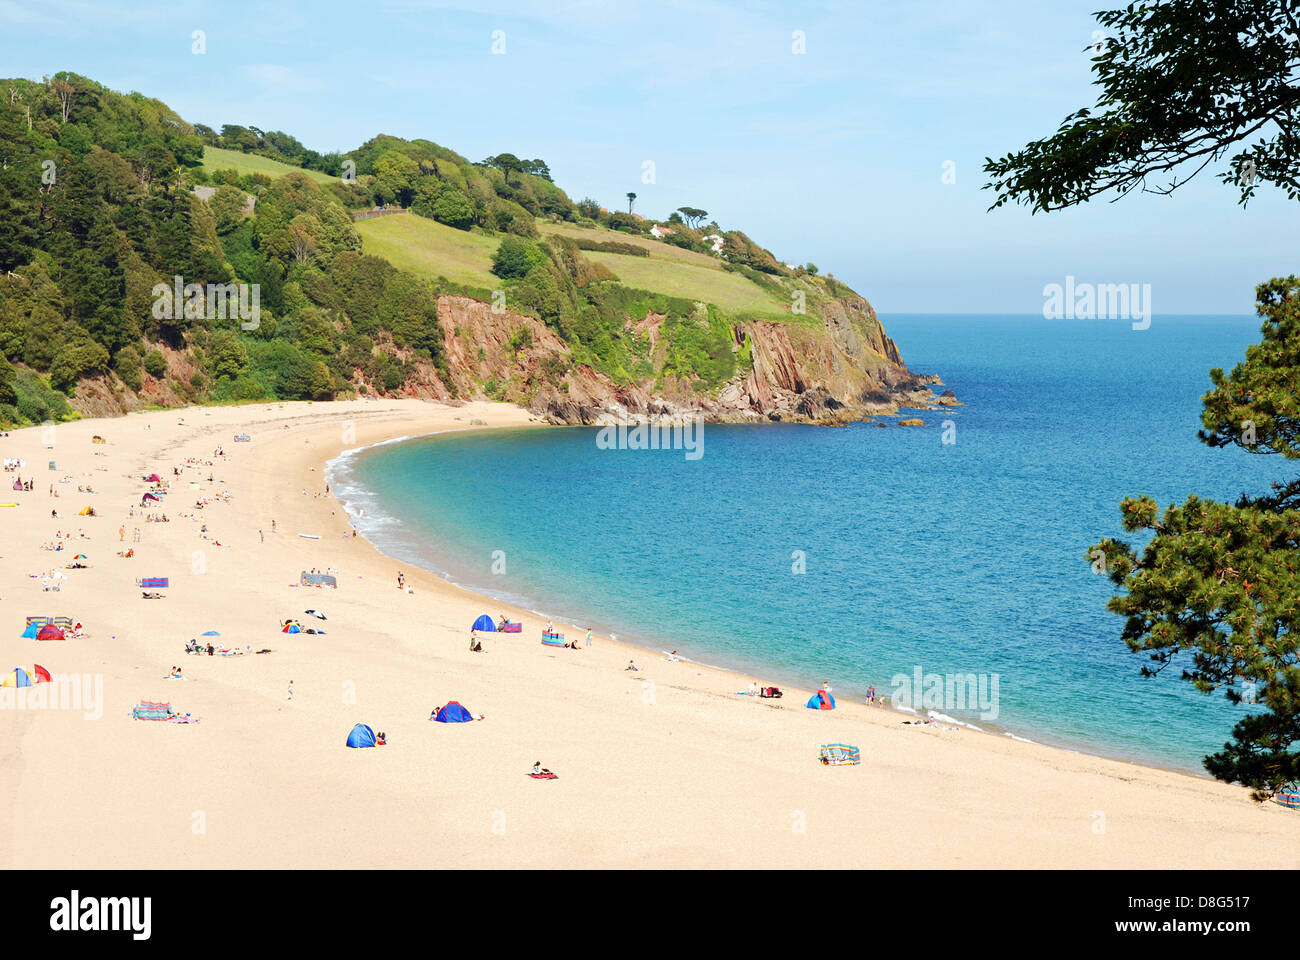 A sunny day at Blackpool sands near Dartmouth in Devon, UK - Stock Image